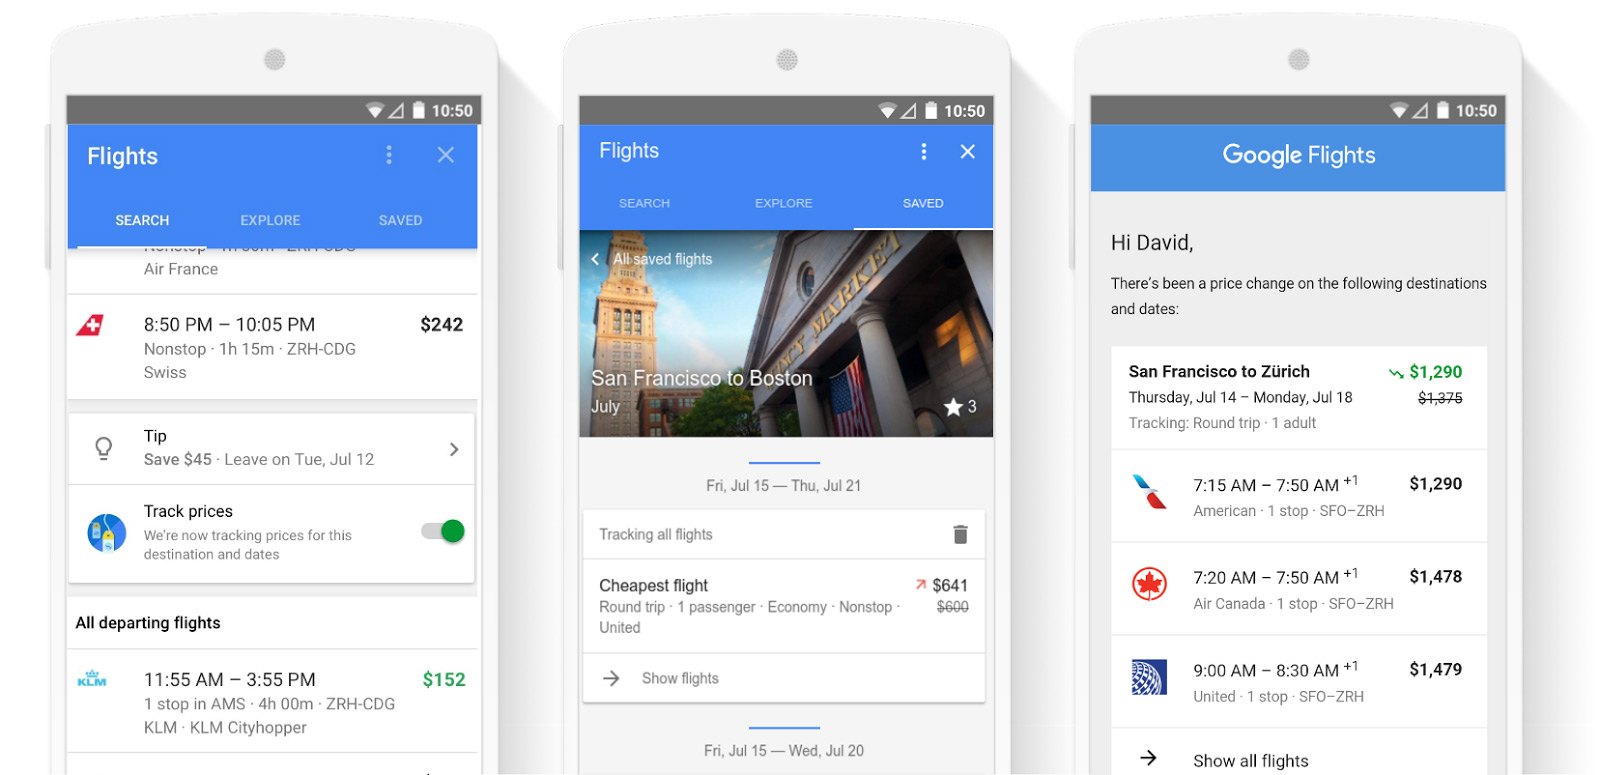 Google Flights Google Helps You Find Deals On Flights And Hotels